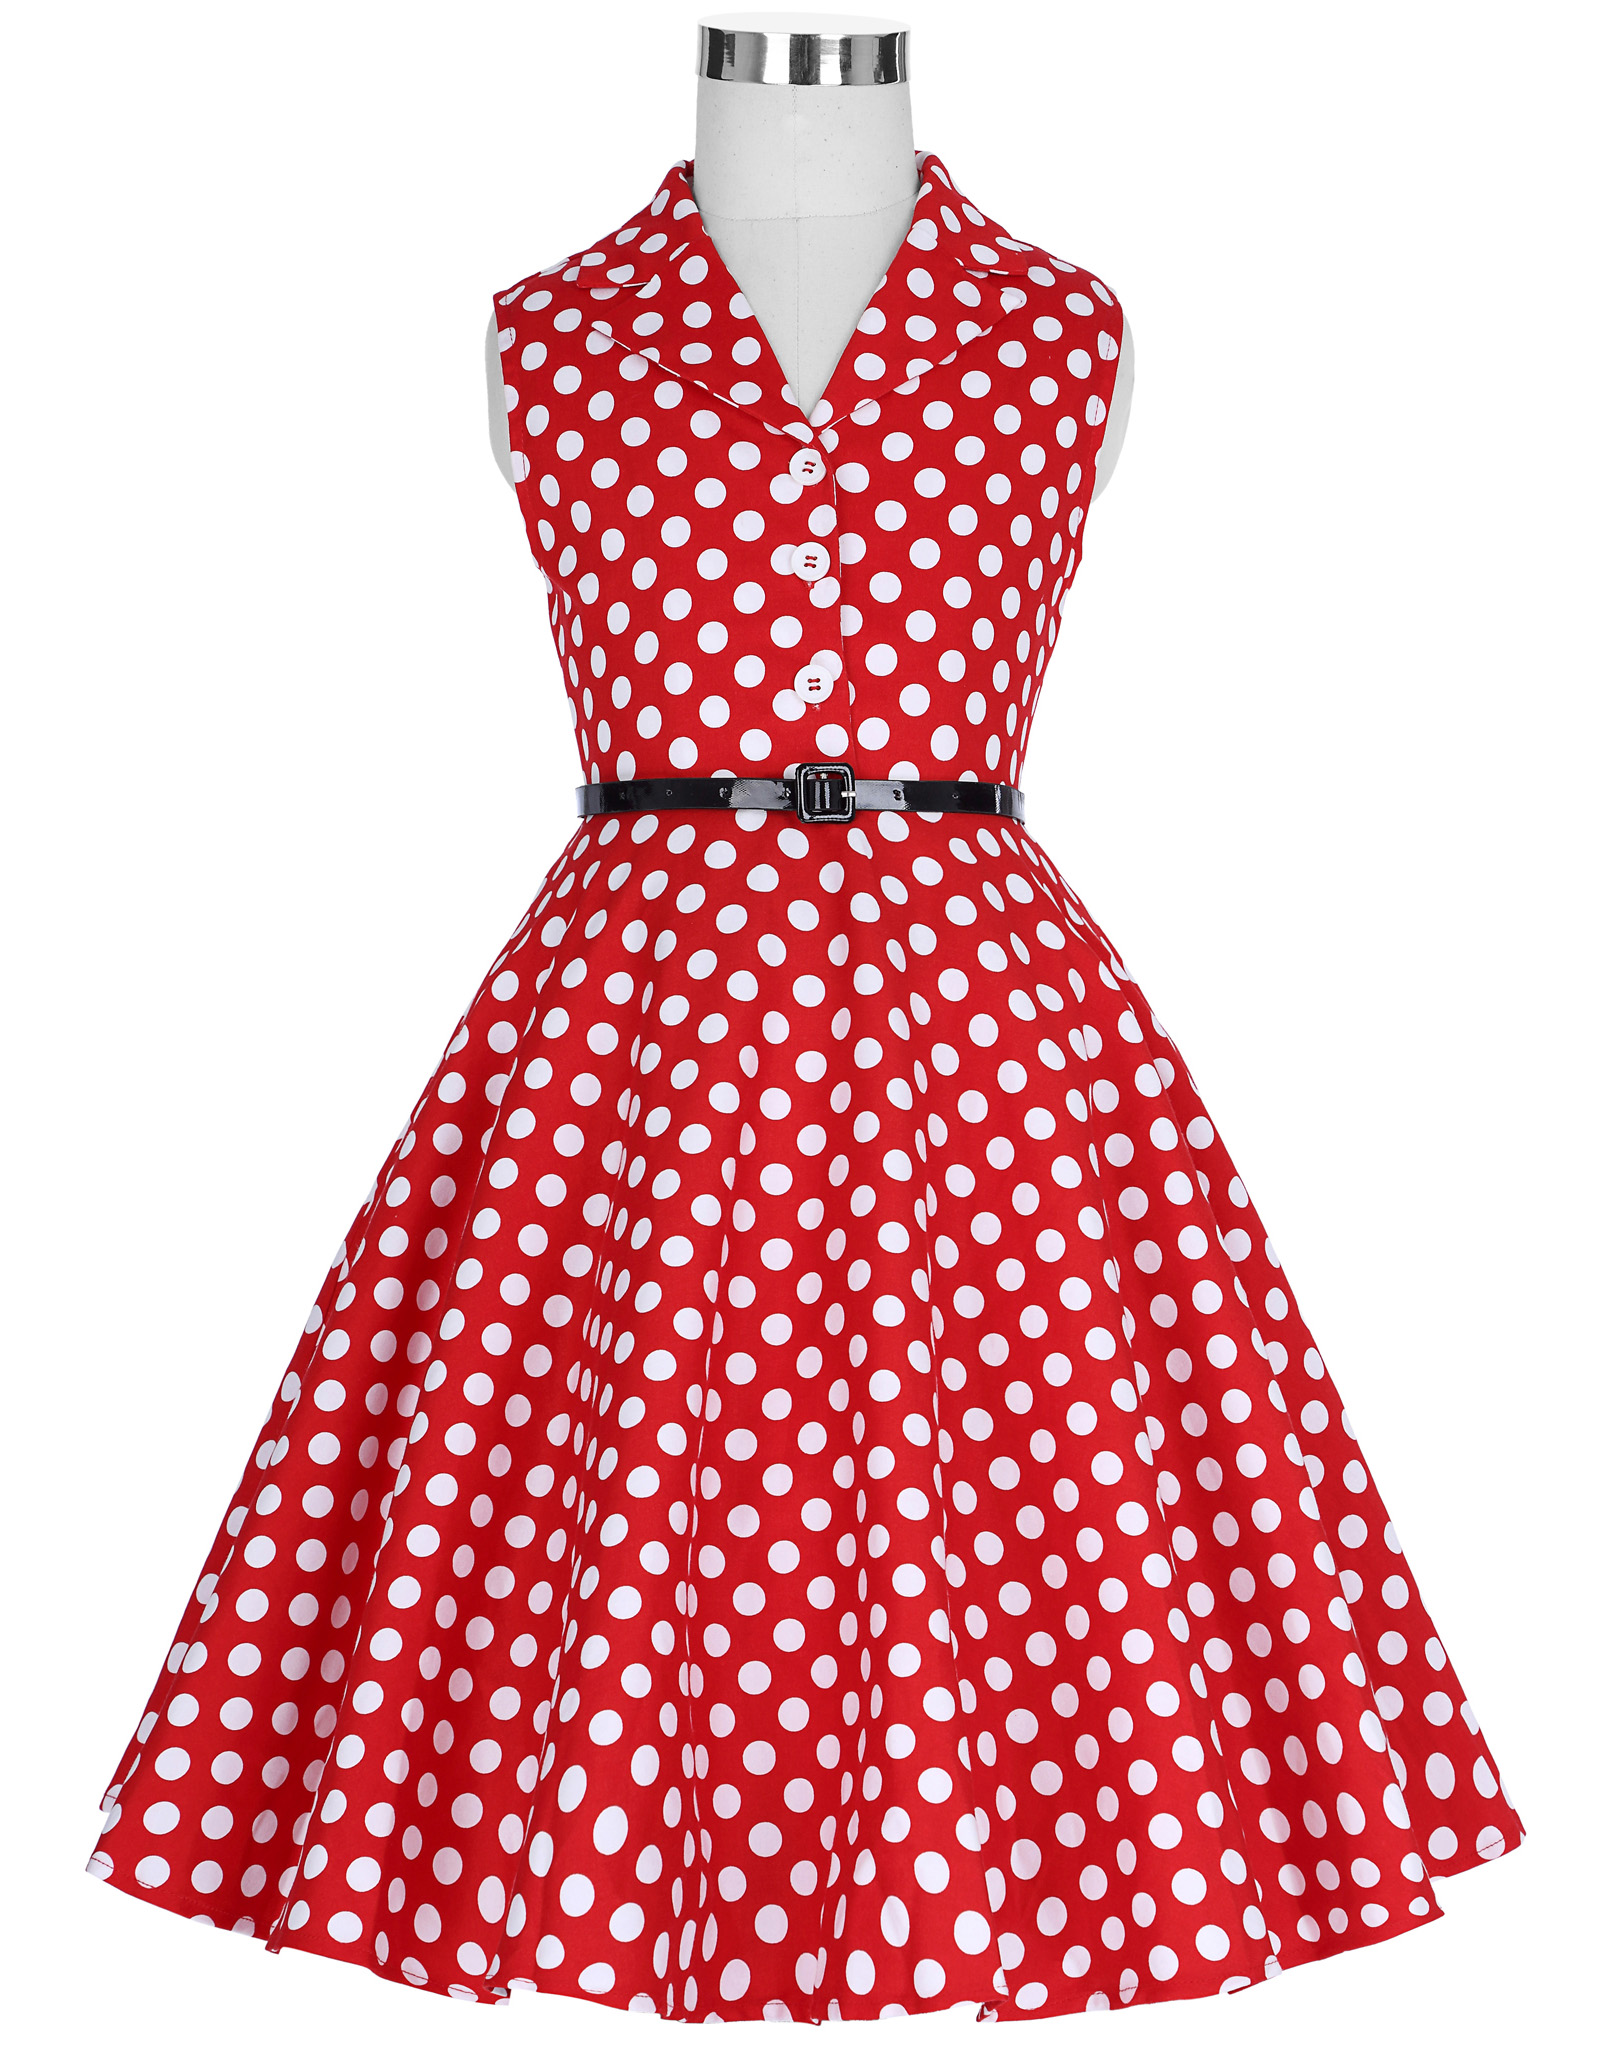 New Children Kids Girls Retro Vintage Sleeveless Lapel Collar Polka Dots DressNew Children Kids Girls Retro Vintage Sleeveless Lapel Collar Polka Dots Dress